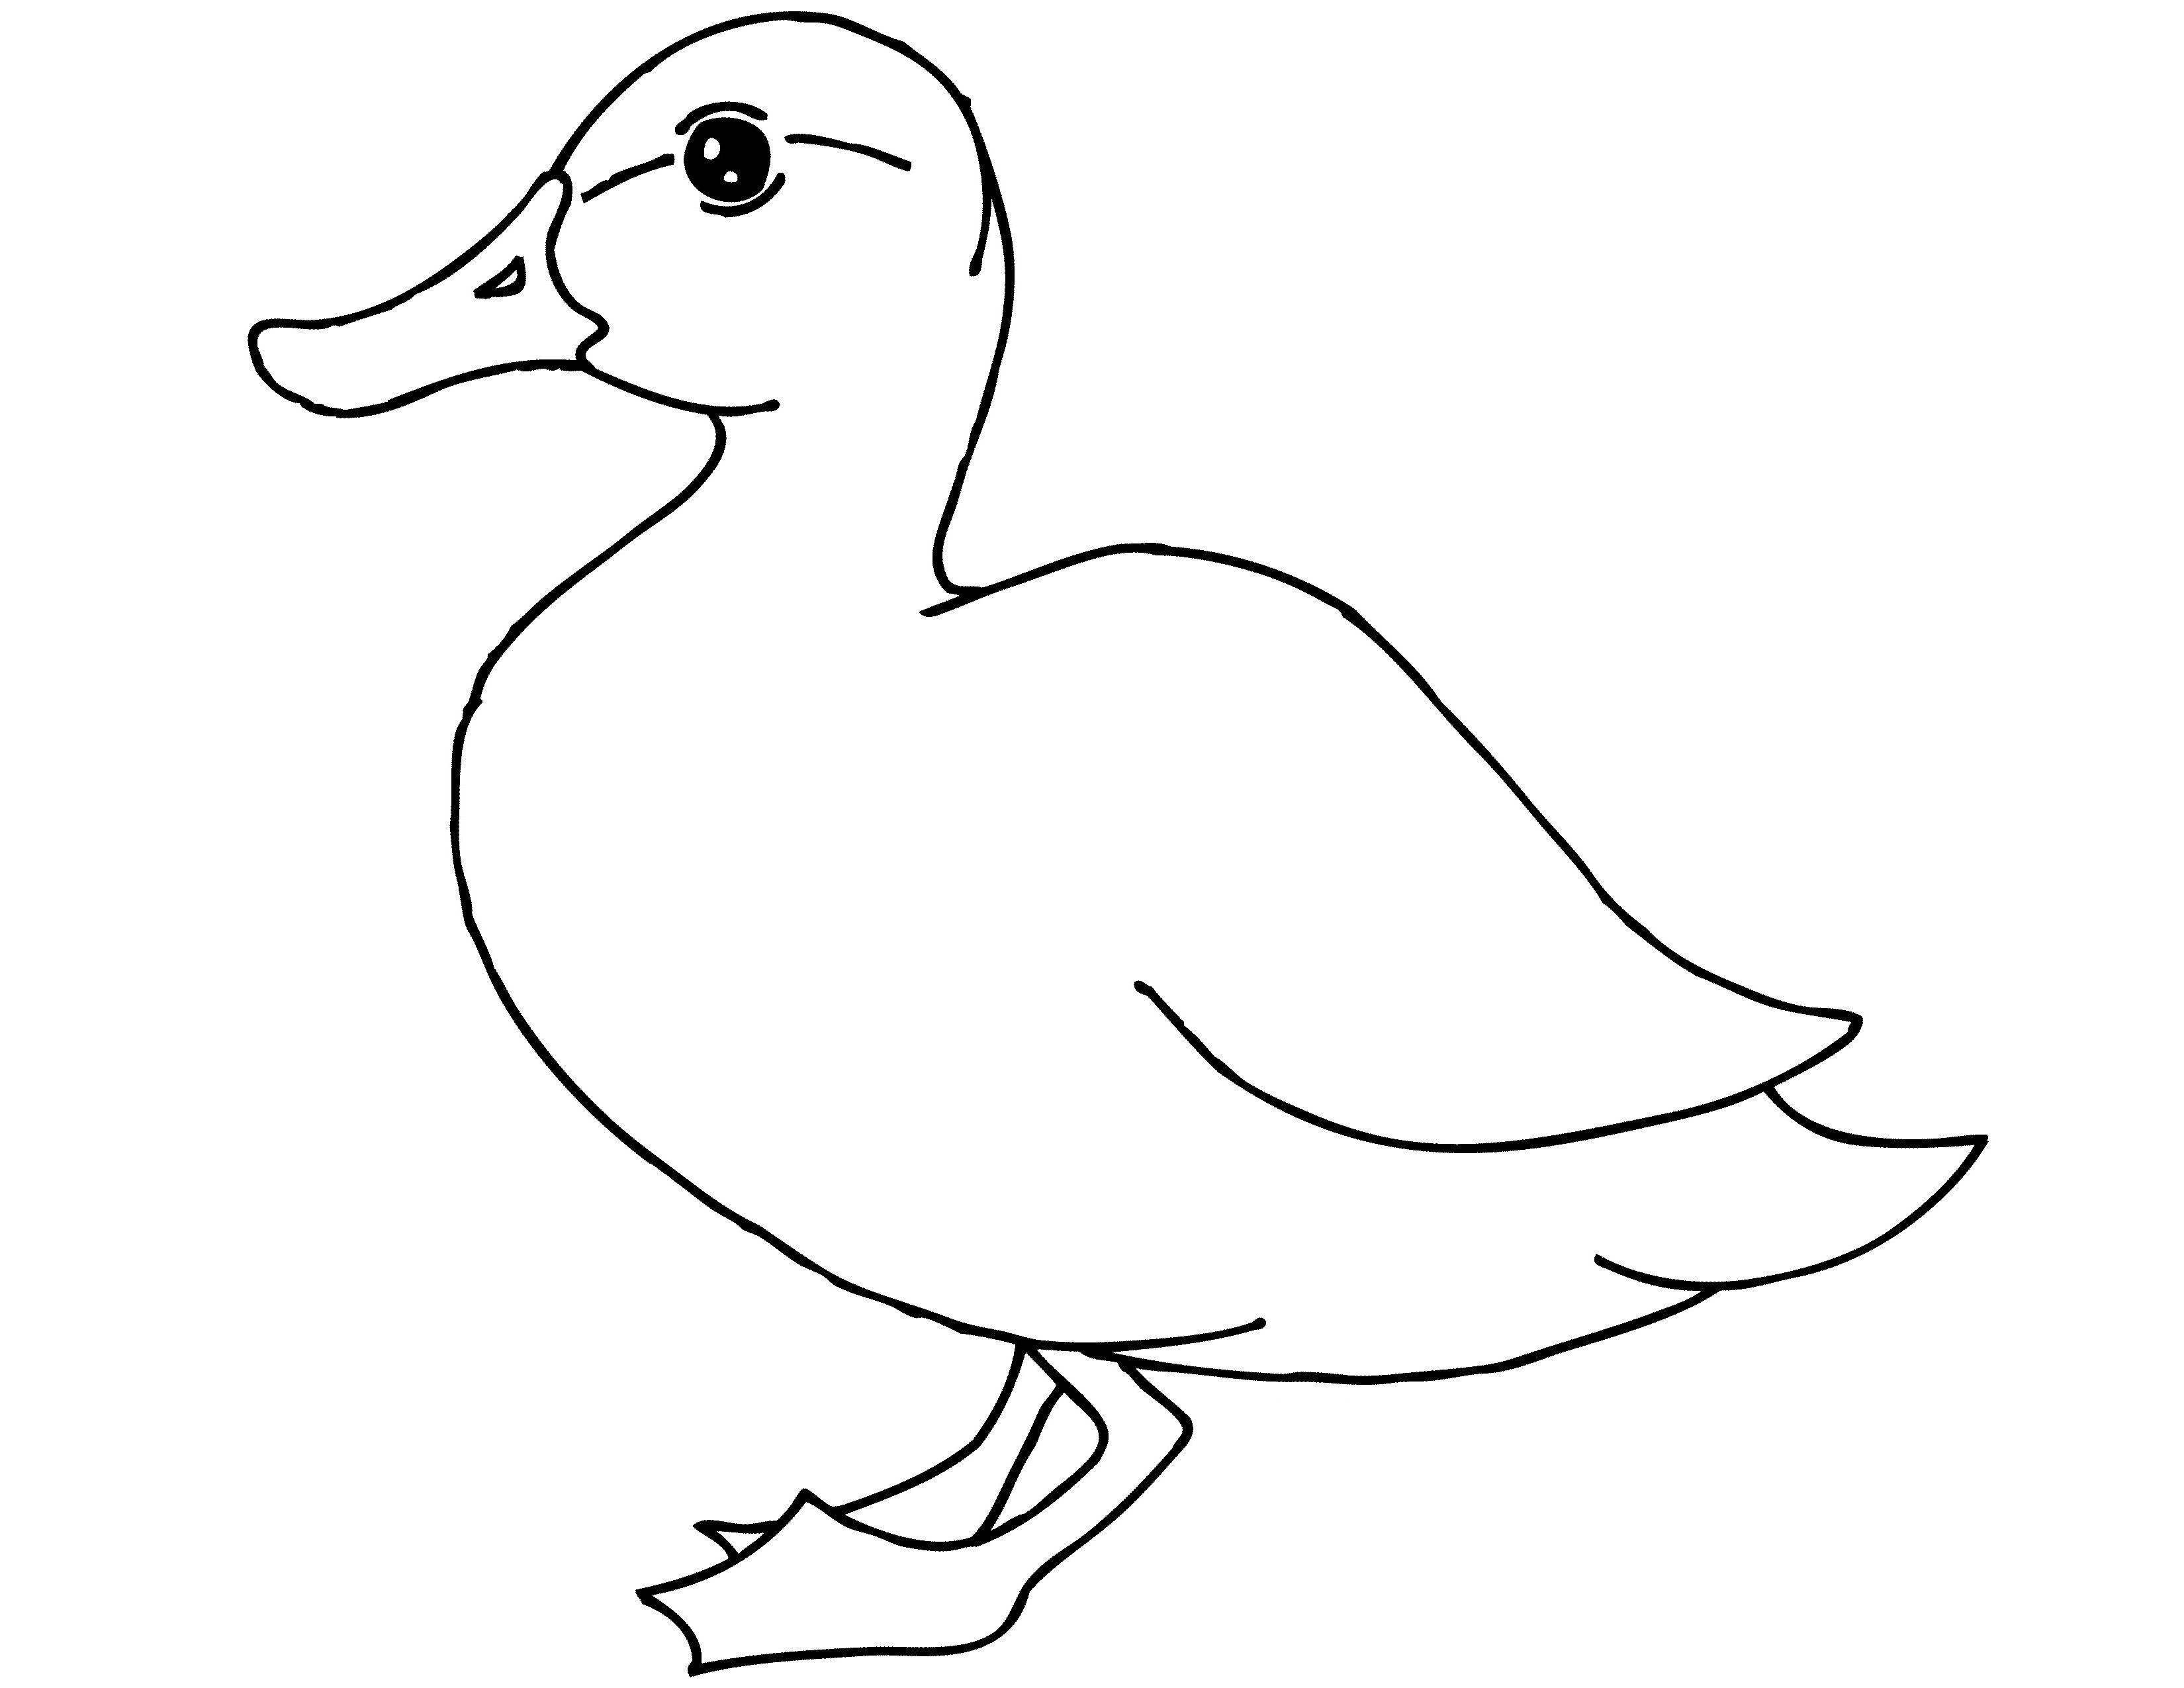 Free Printable Duck Coloring Pages For Kids   Animal Place